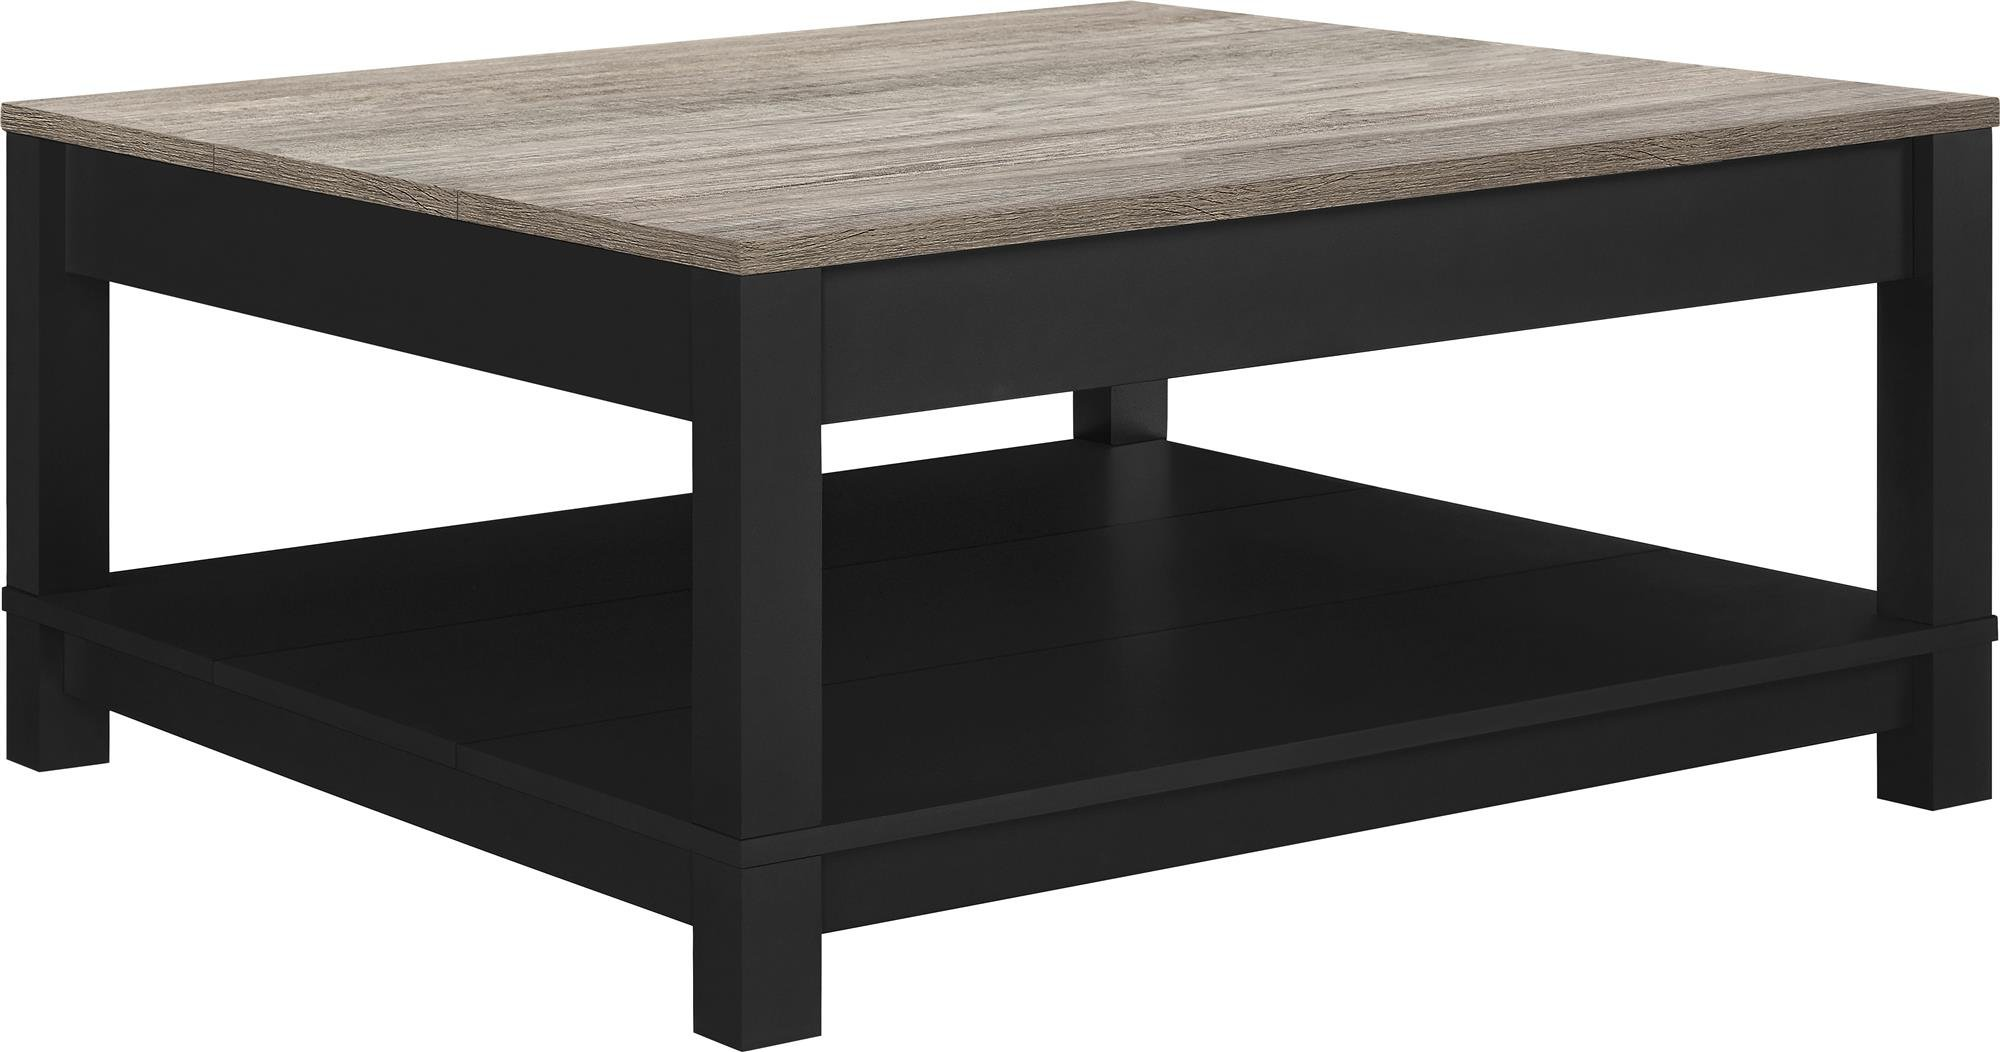 Ameriwood Home Carver Coffee Table, Black